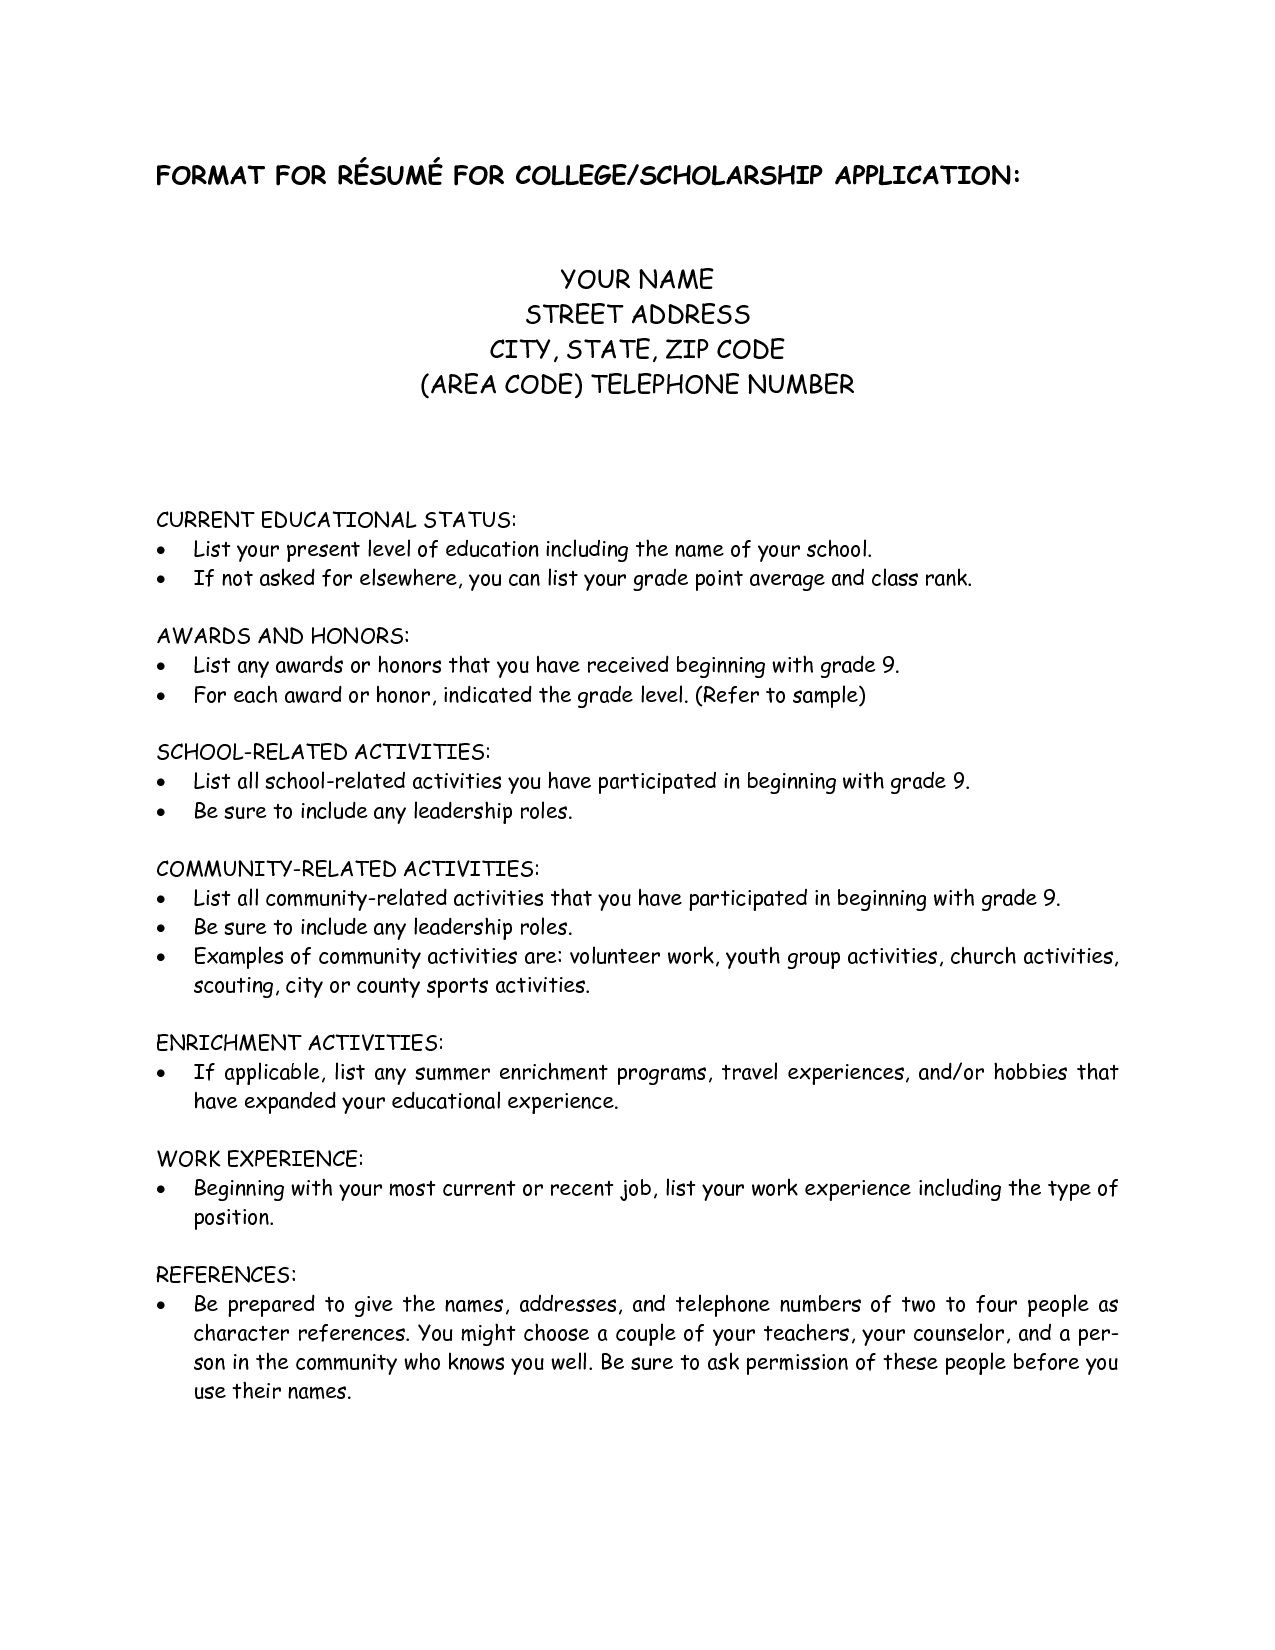 College Scholarship Resume Template #1197 - http://topresume.info/2015